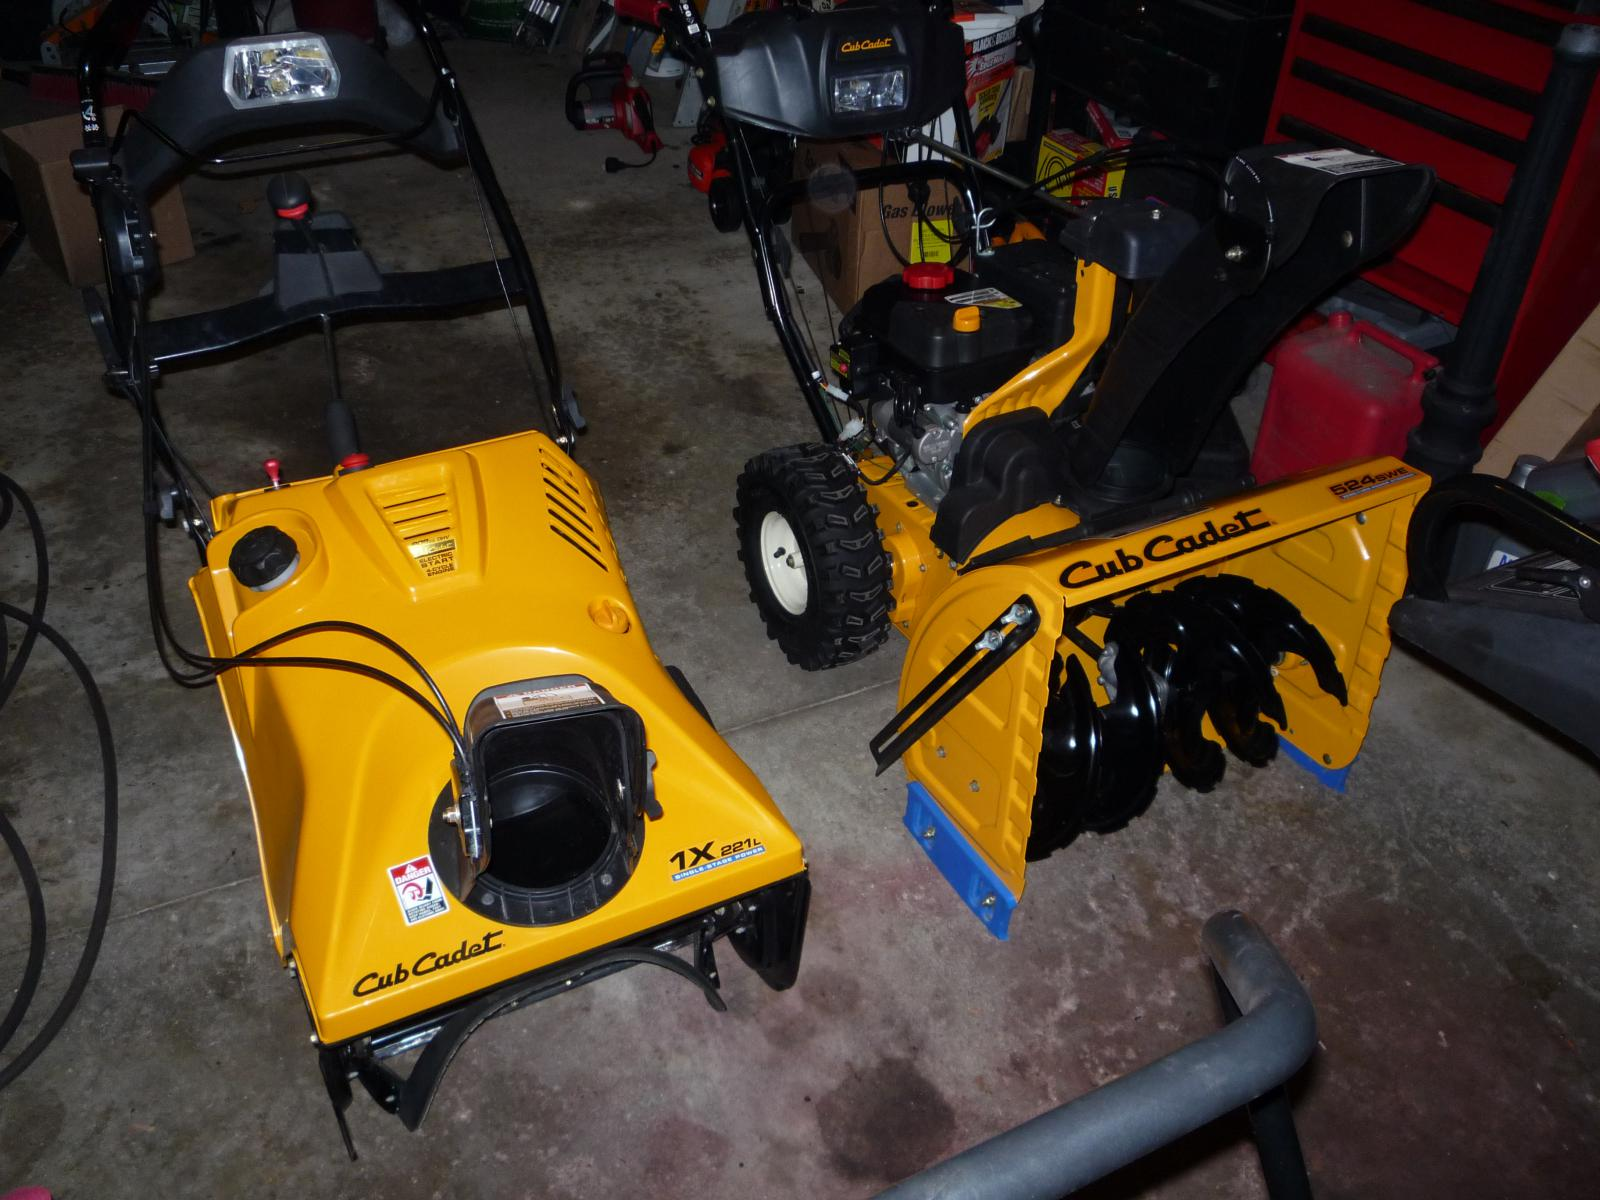 1999 vintage snowblower rebuilds-p1020775.jpg